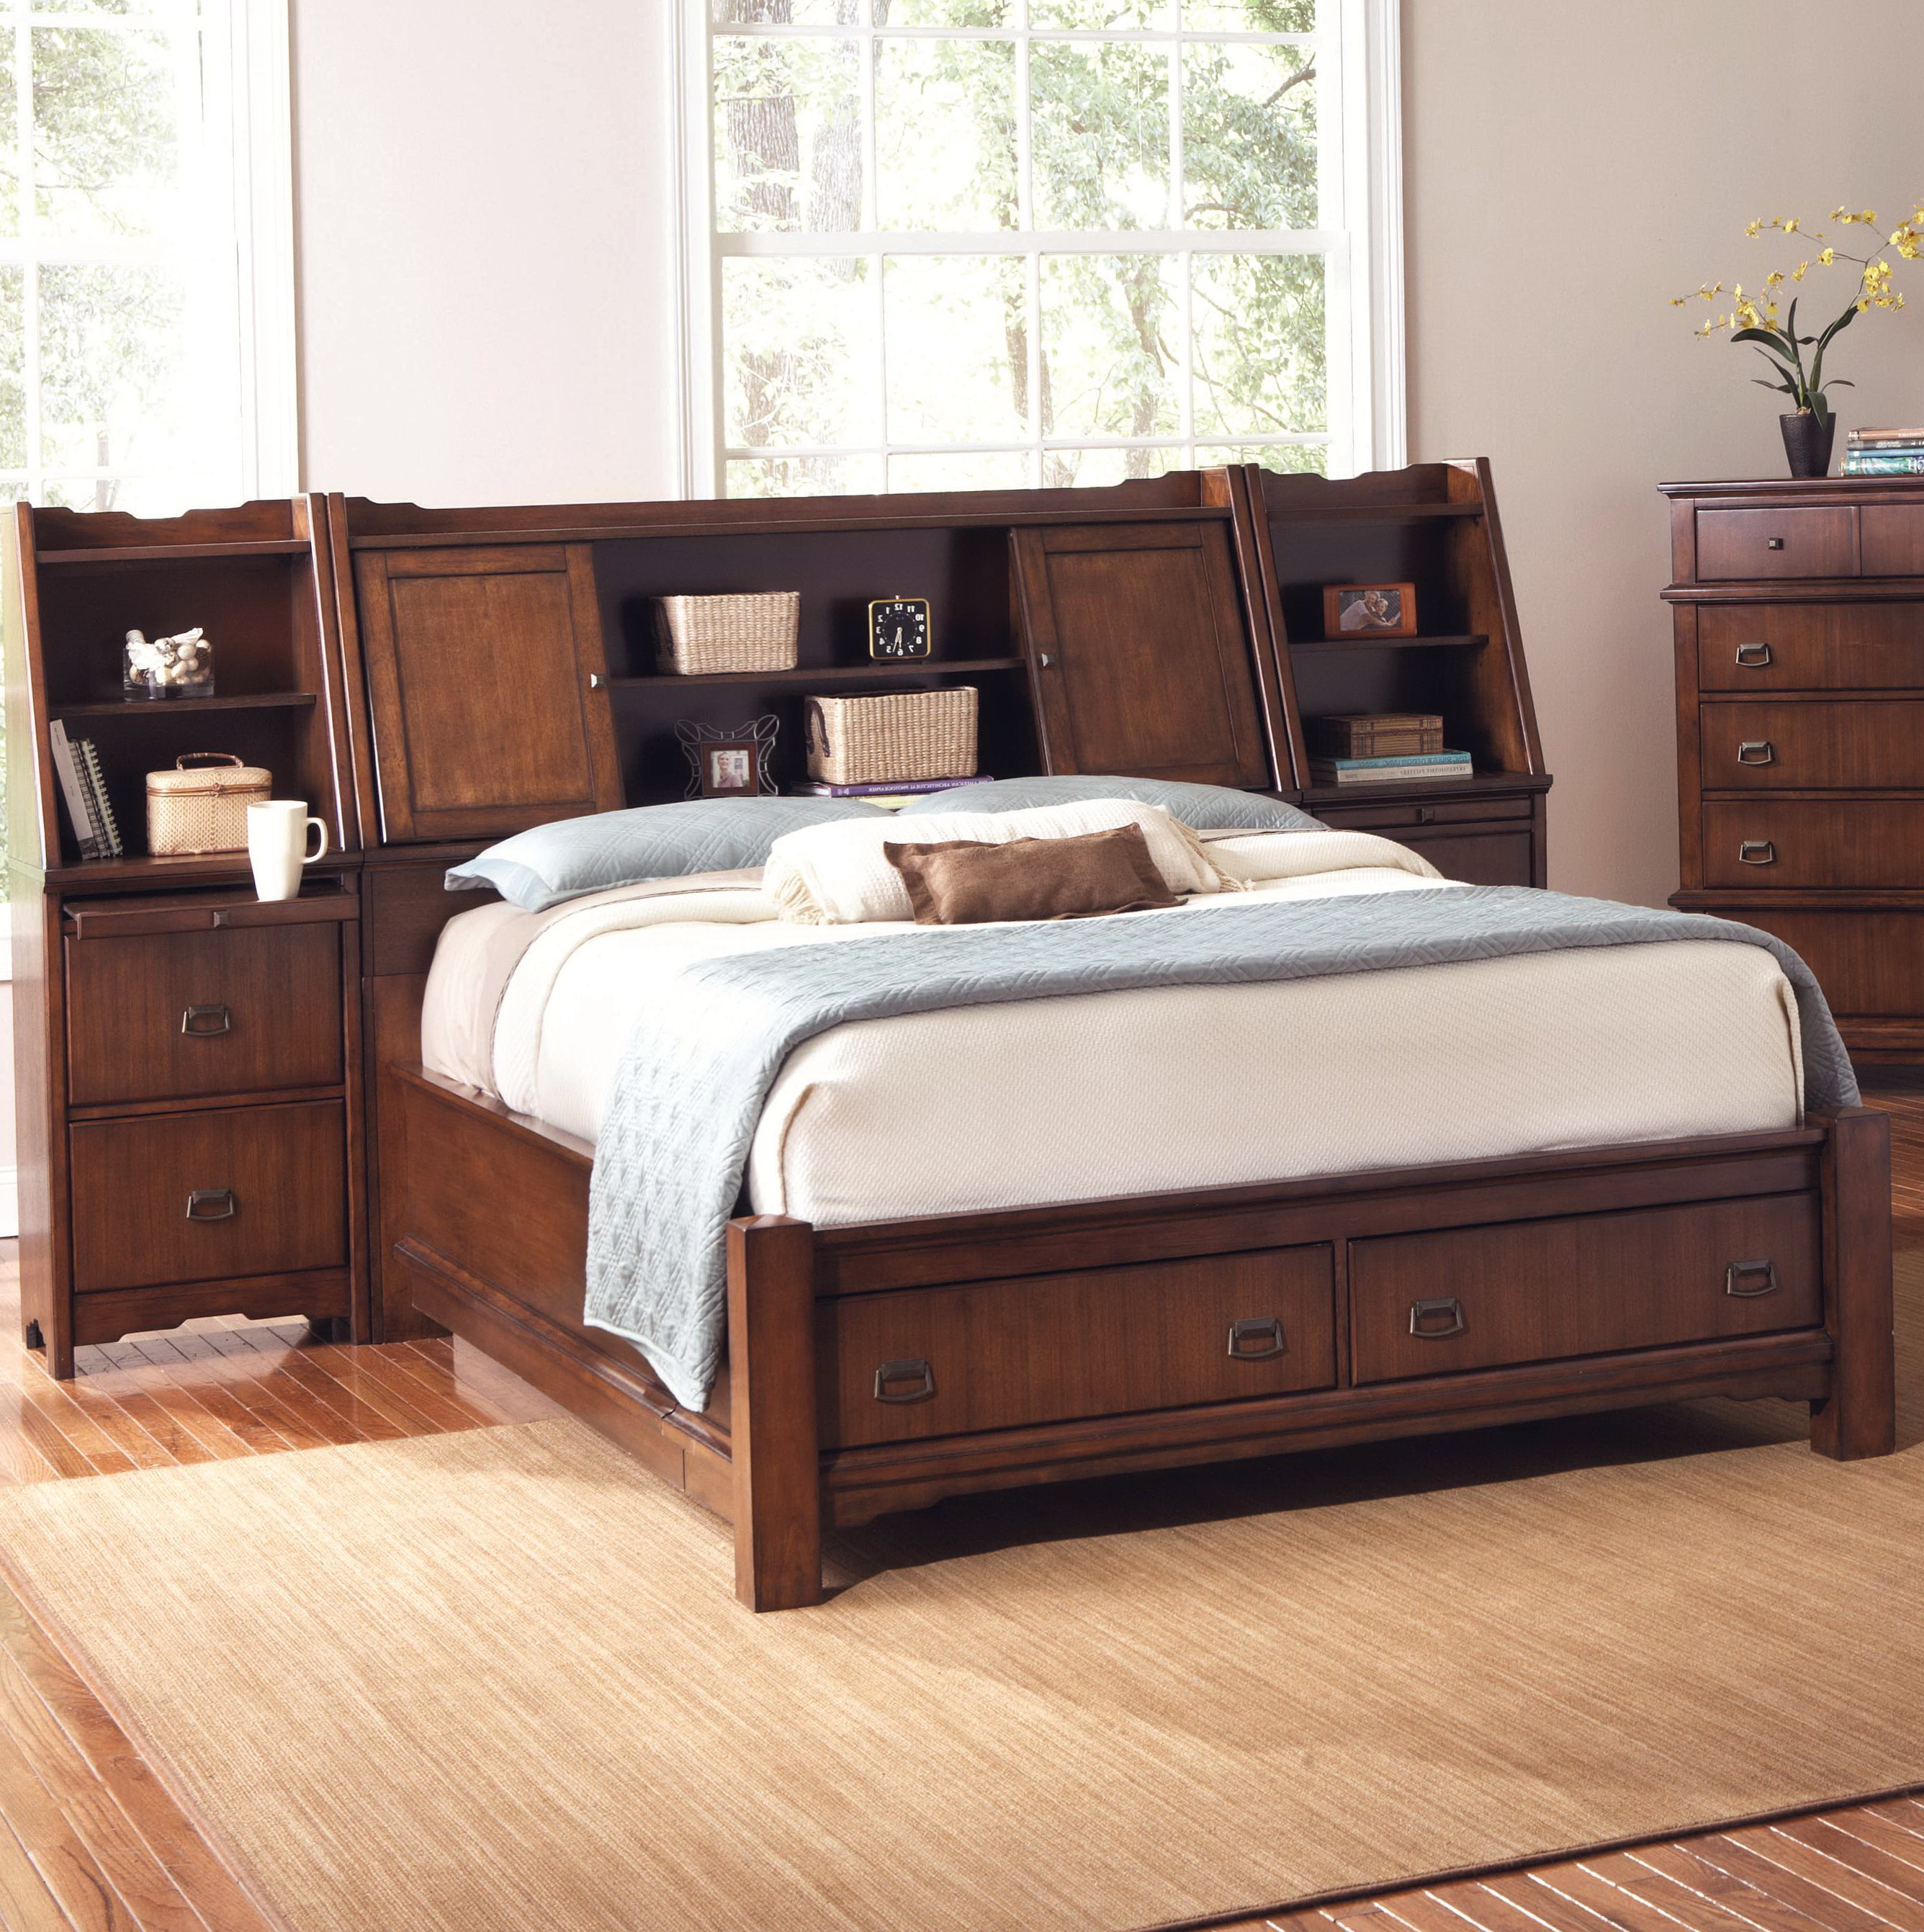 Permalink to Queen Bed With Bookshelf Headboard